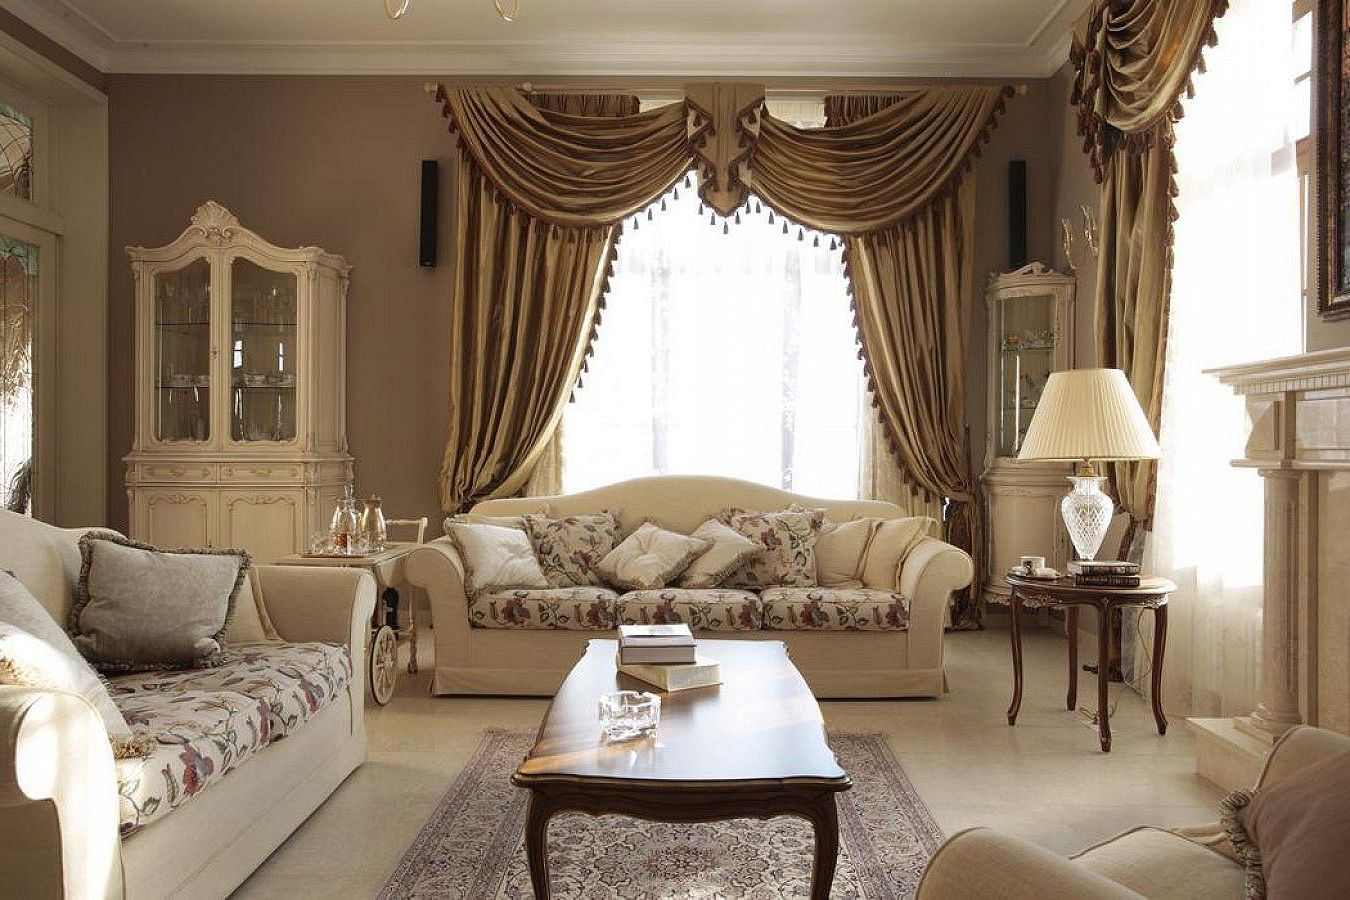 Classic style interior design ideas for Interior design decorating styles